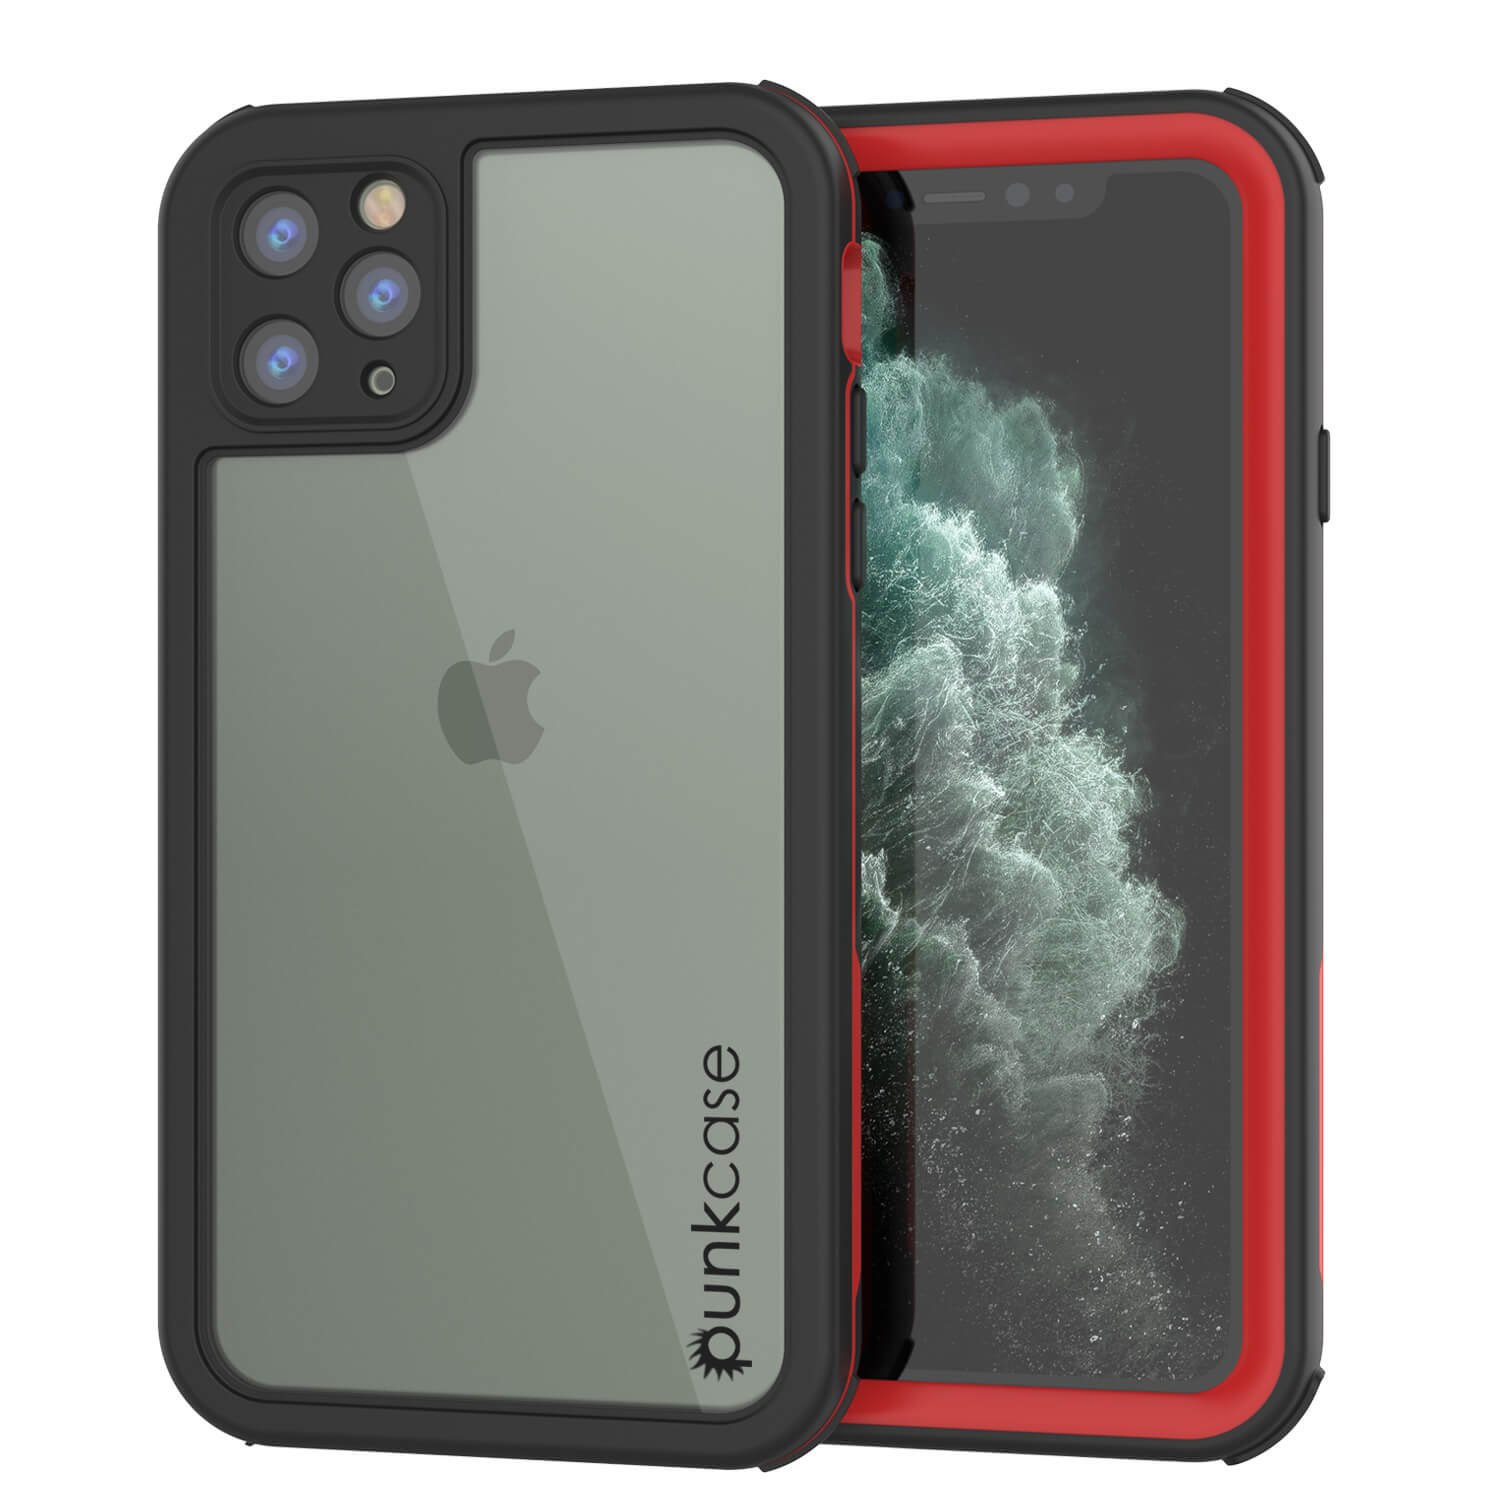 iPhone 11 Pro Waterproof IP68 Case, Punkcase [red] [Rapture Series]  W/Built in Screen Protector